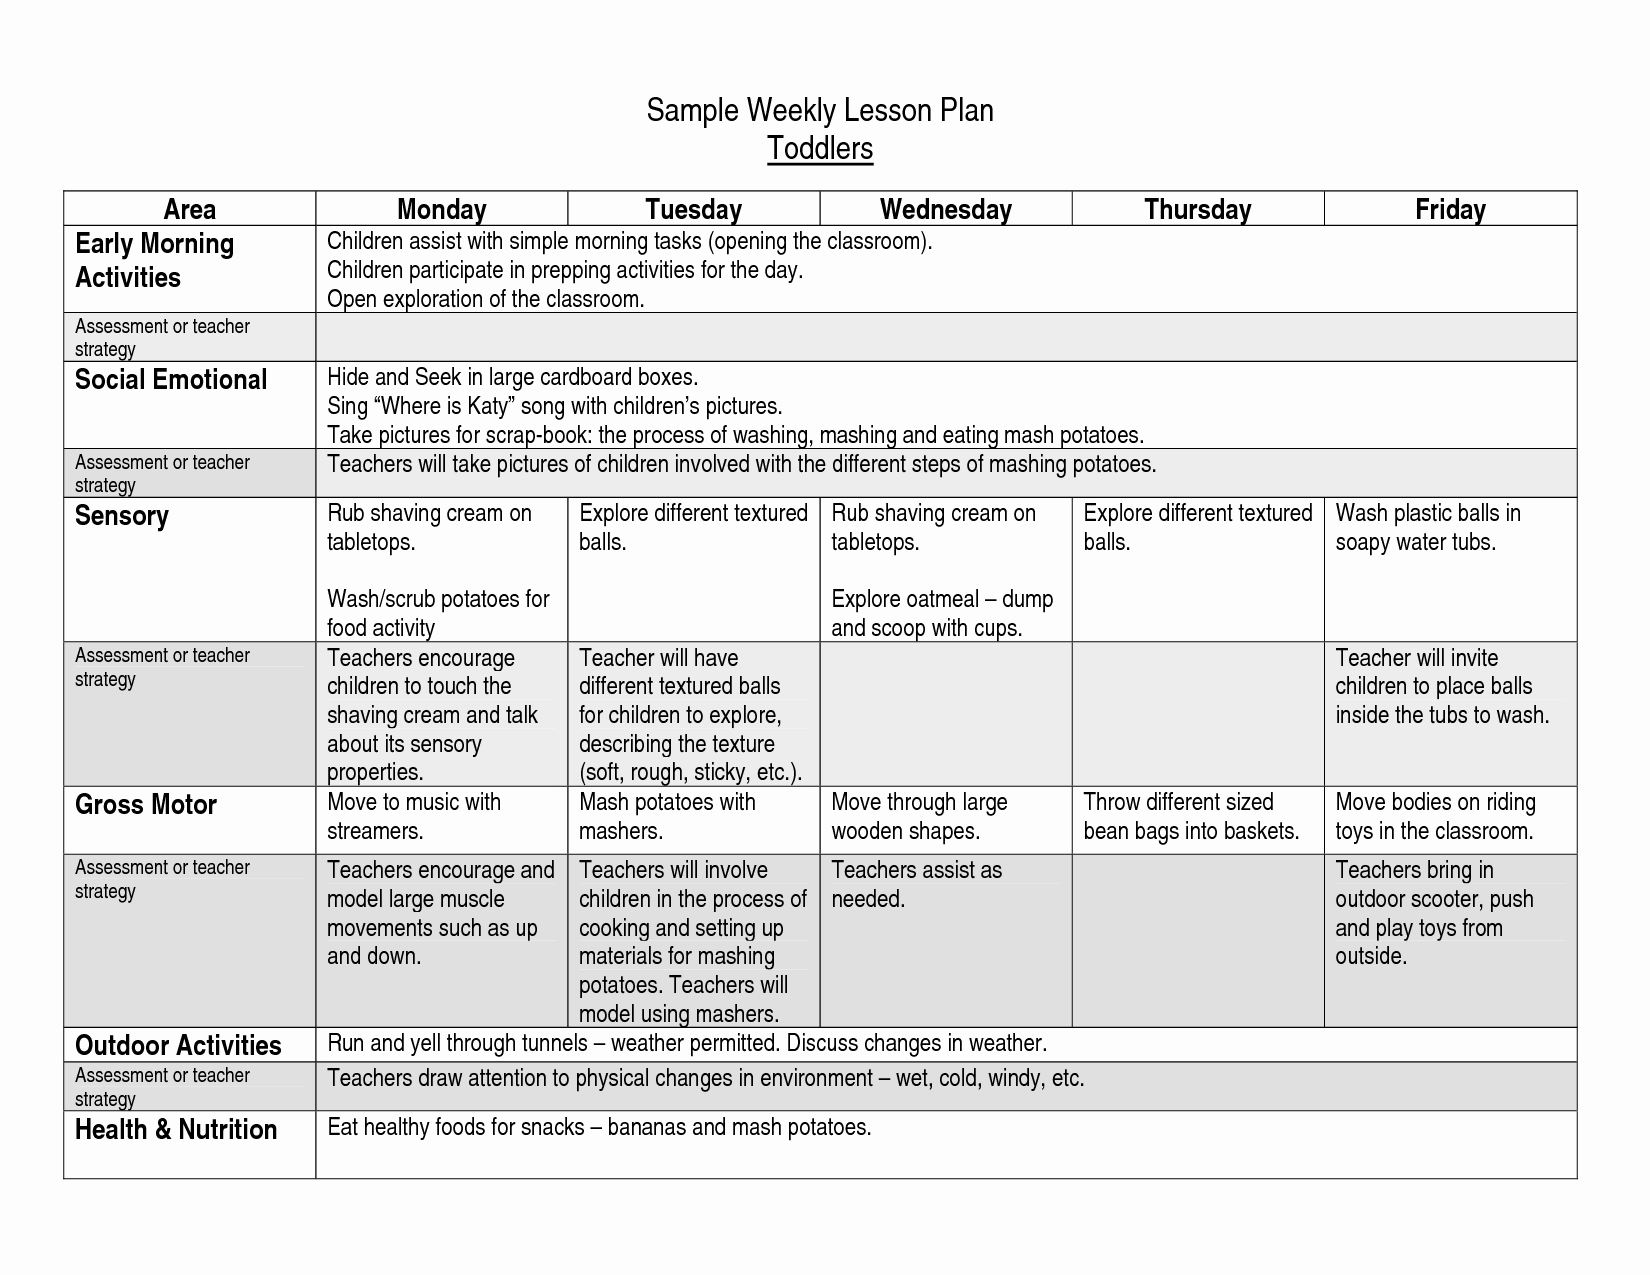 Lesson Plans for toddlers Template Beautiful Download Free Weekly Lesson Plan Template Lots Of Free